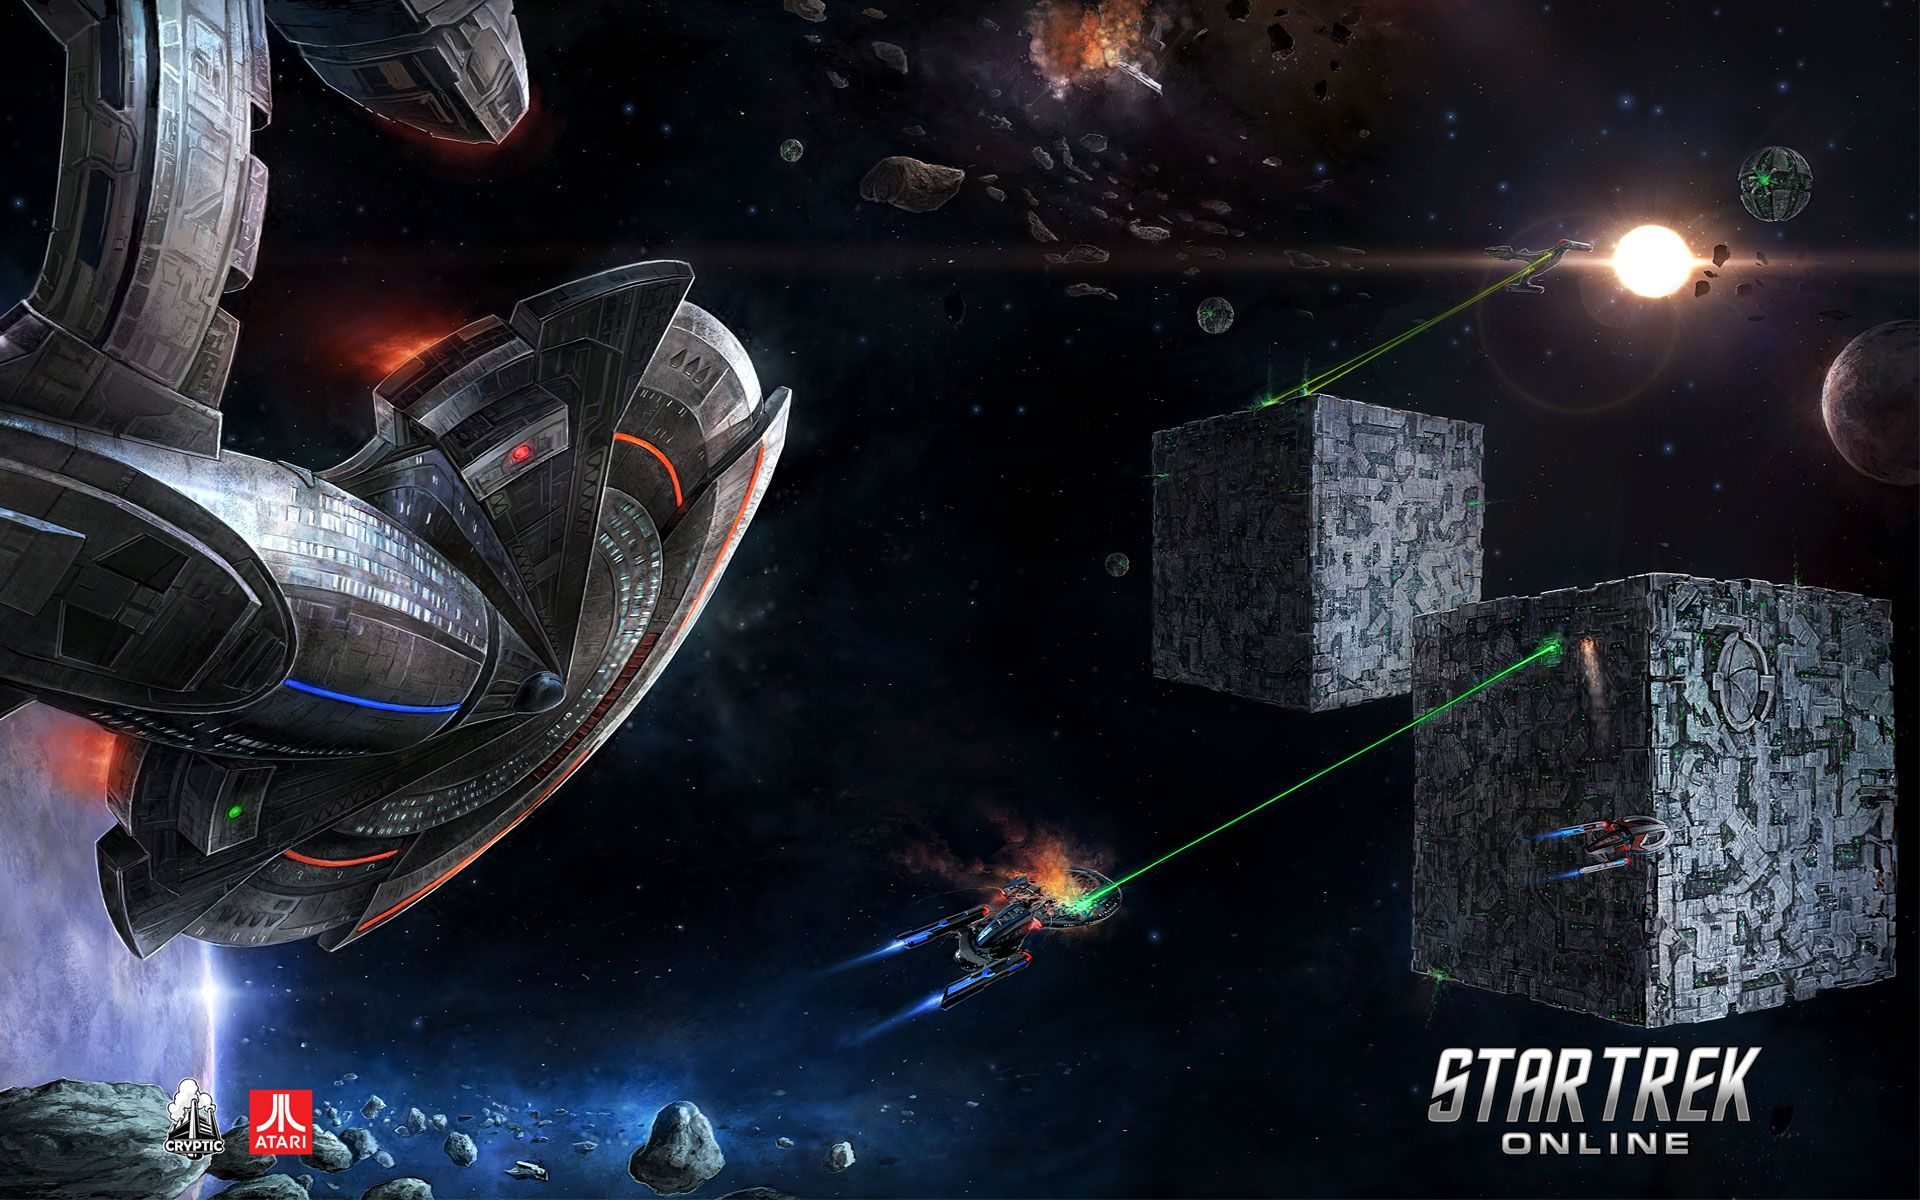 Star Trek Wallpaper | Star Trek Online Wallpapers